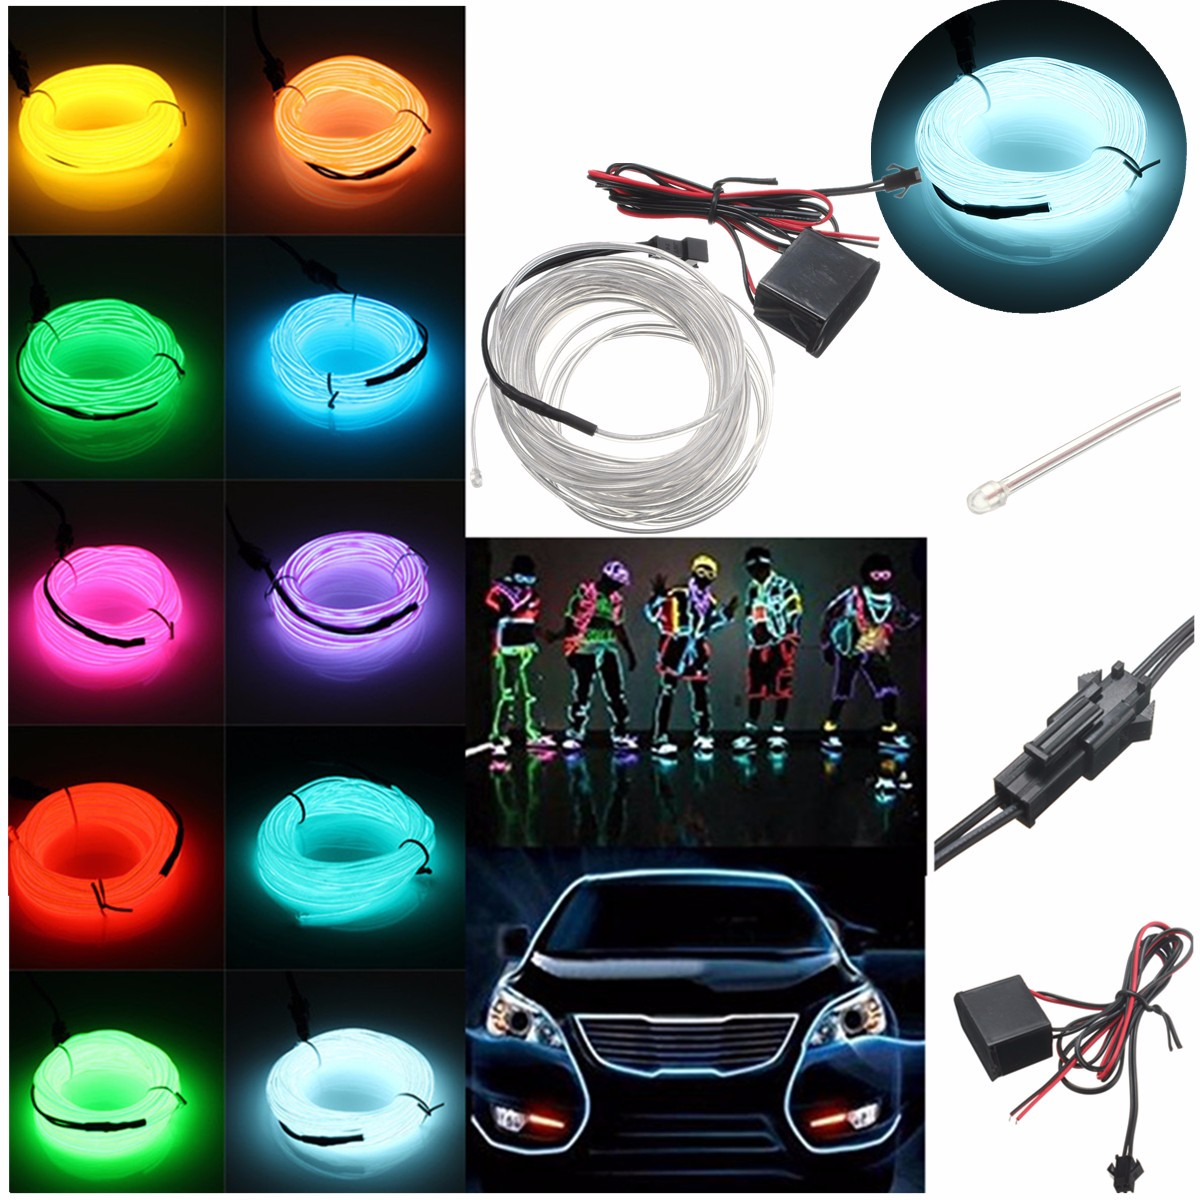 Waterproof 2M LED Cold Lights Flexible Neon EL Wire DC12V Auto Lamp On Car Cold Light Strips Line Interior Decora Strips Lamps